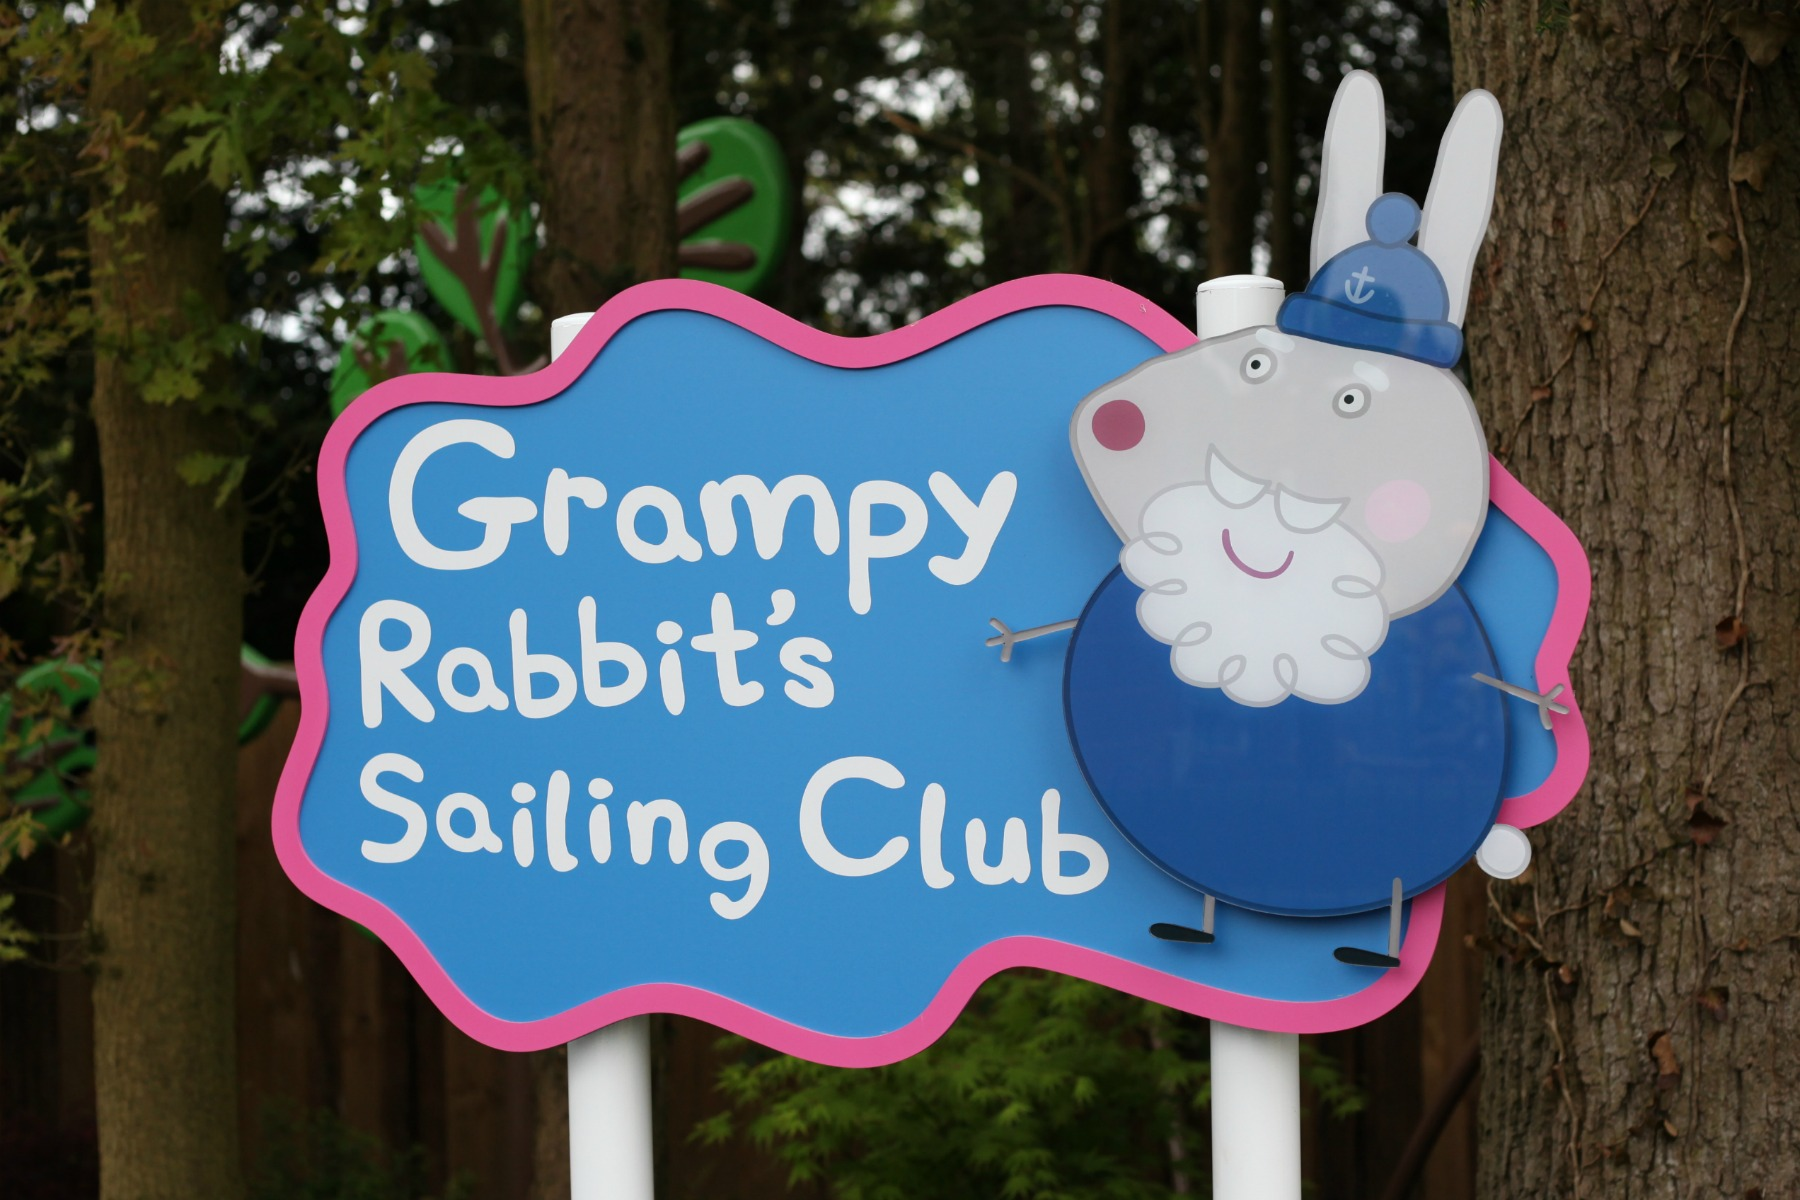 Grampy Rabbit's Sailing Club at Peppa Pig World